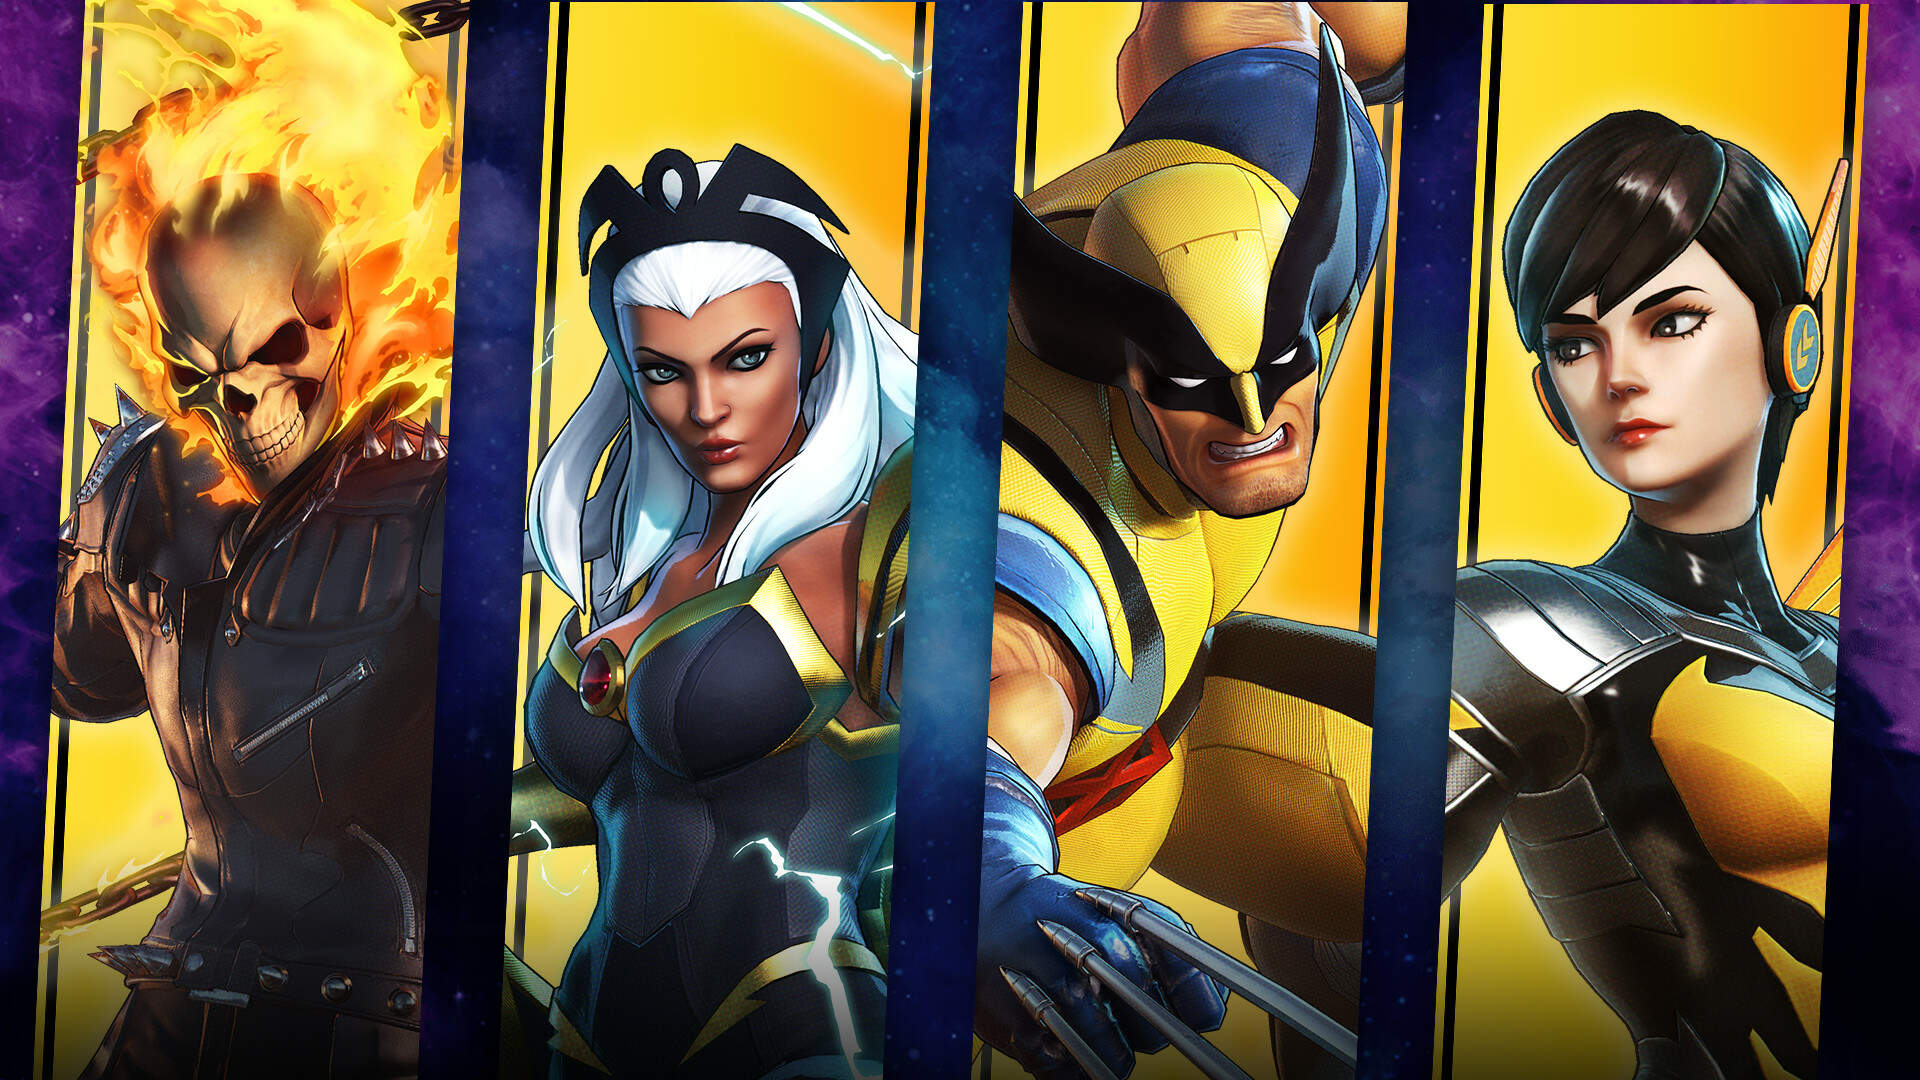 Marvel Ultimate Alliance 3 Platforms: Is it On PS4, Xbox One and PC?